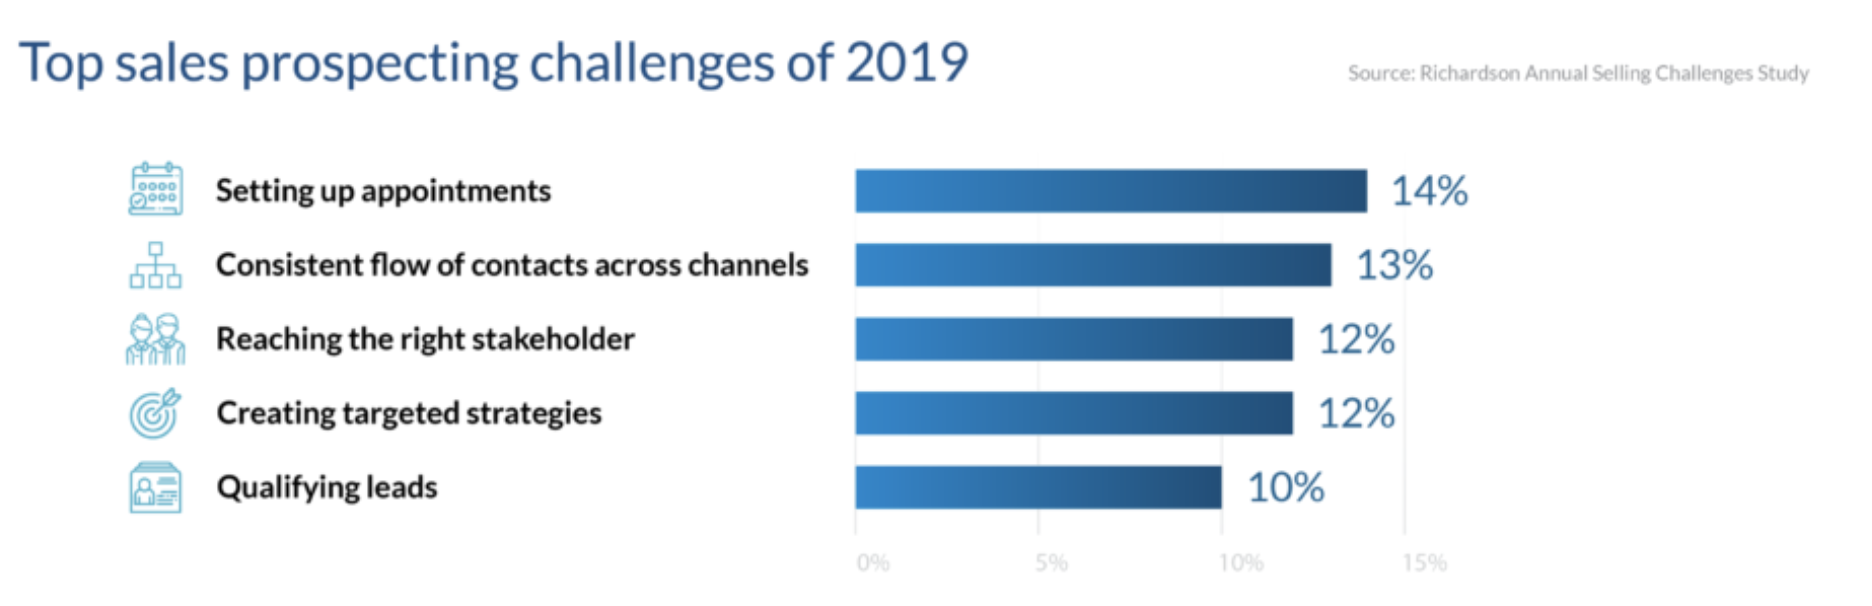 Top sales prospecting challenges of 2019